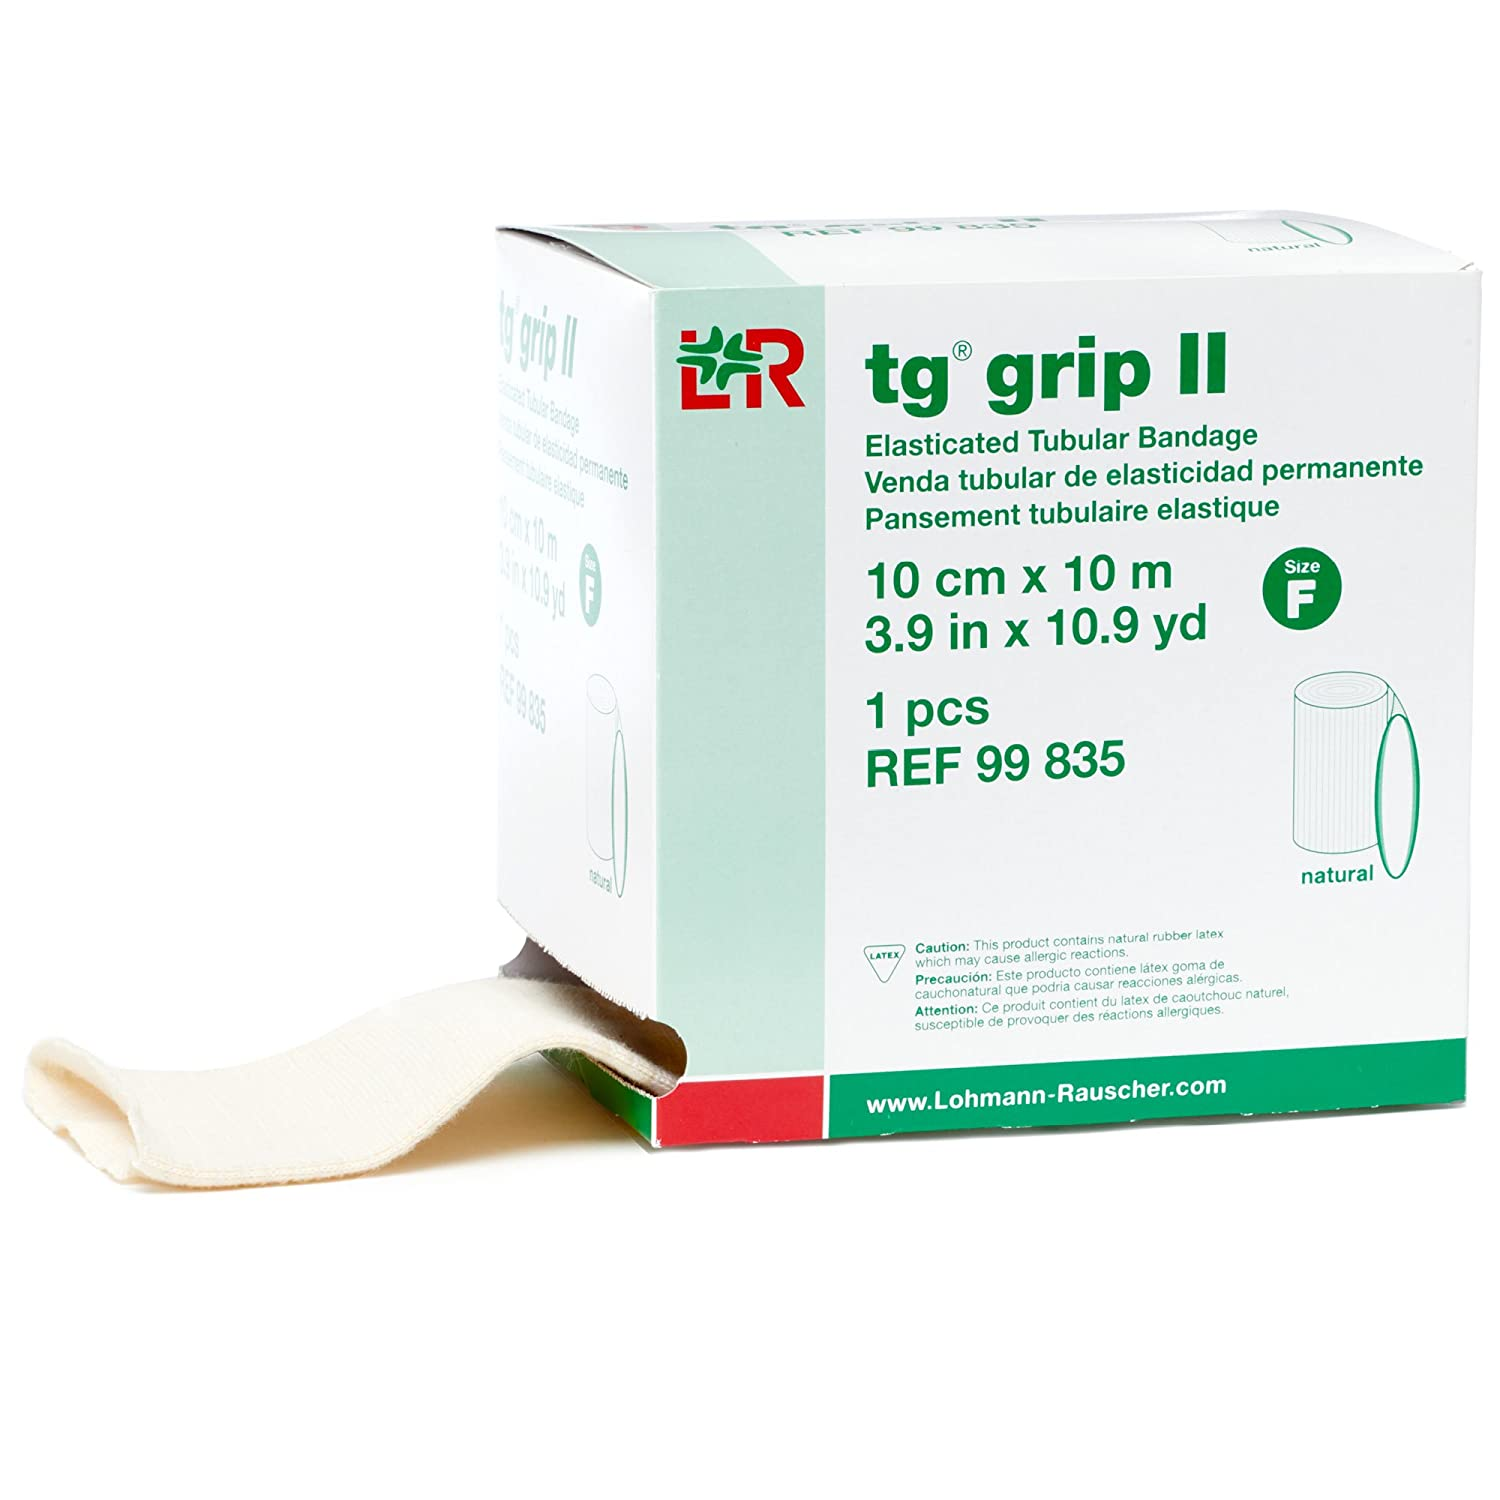 tg grip II Elasticated Tubular Compression Bandage, Seamless Tube Stockinette Wrap for Retention, Lymphedema, & Swelling, Natural, Size F